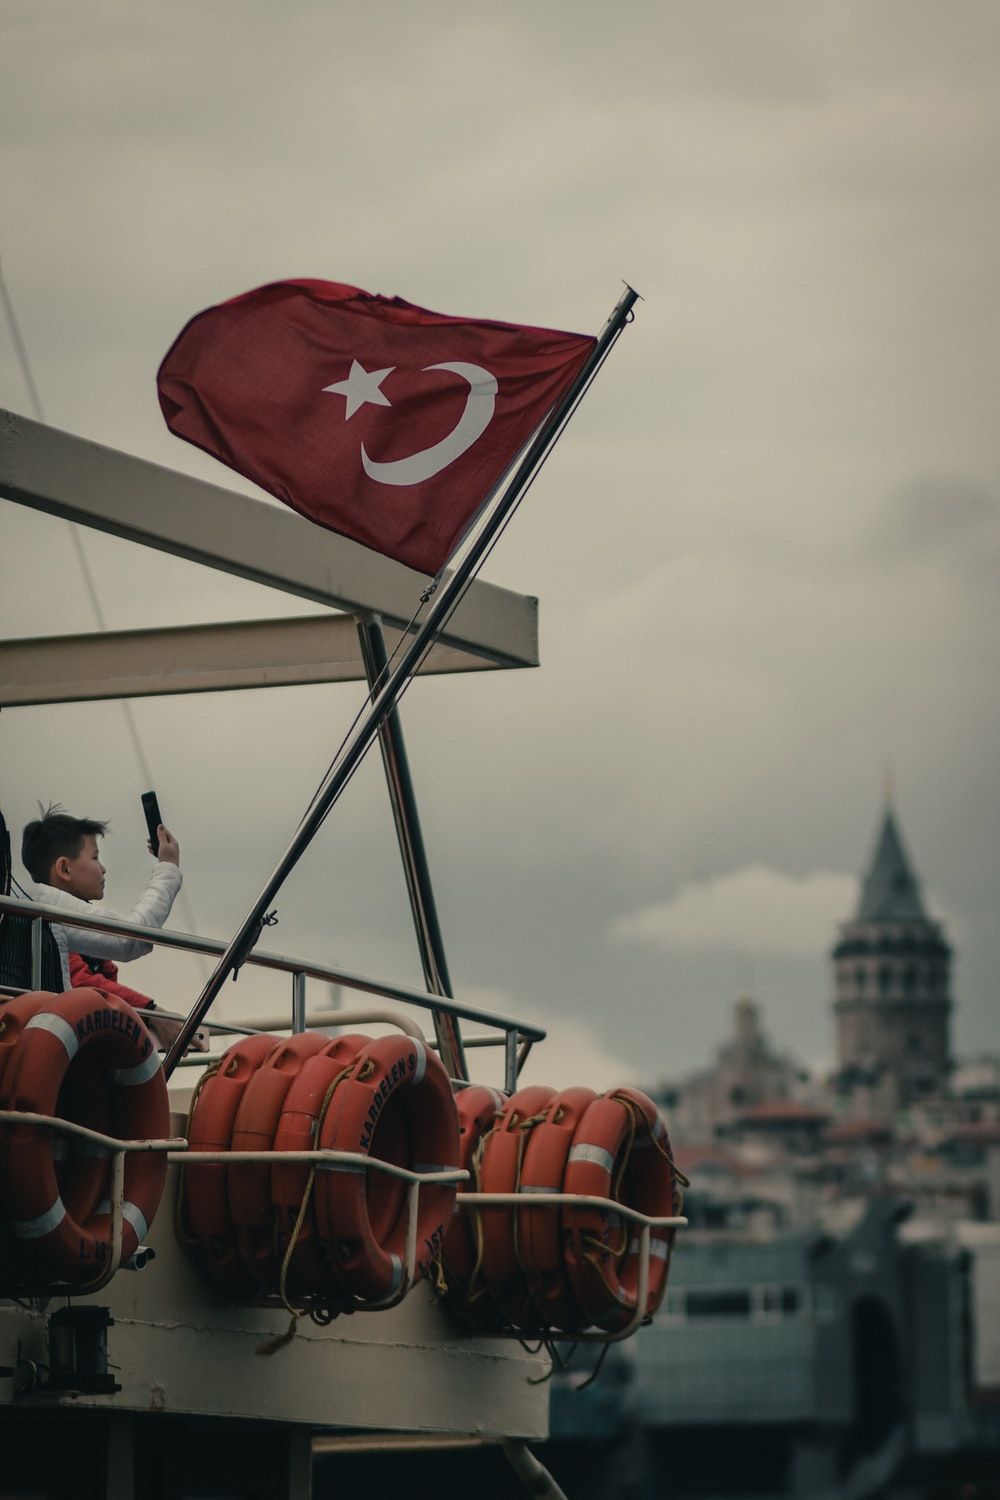 Turkish flag on pole on boat during day